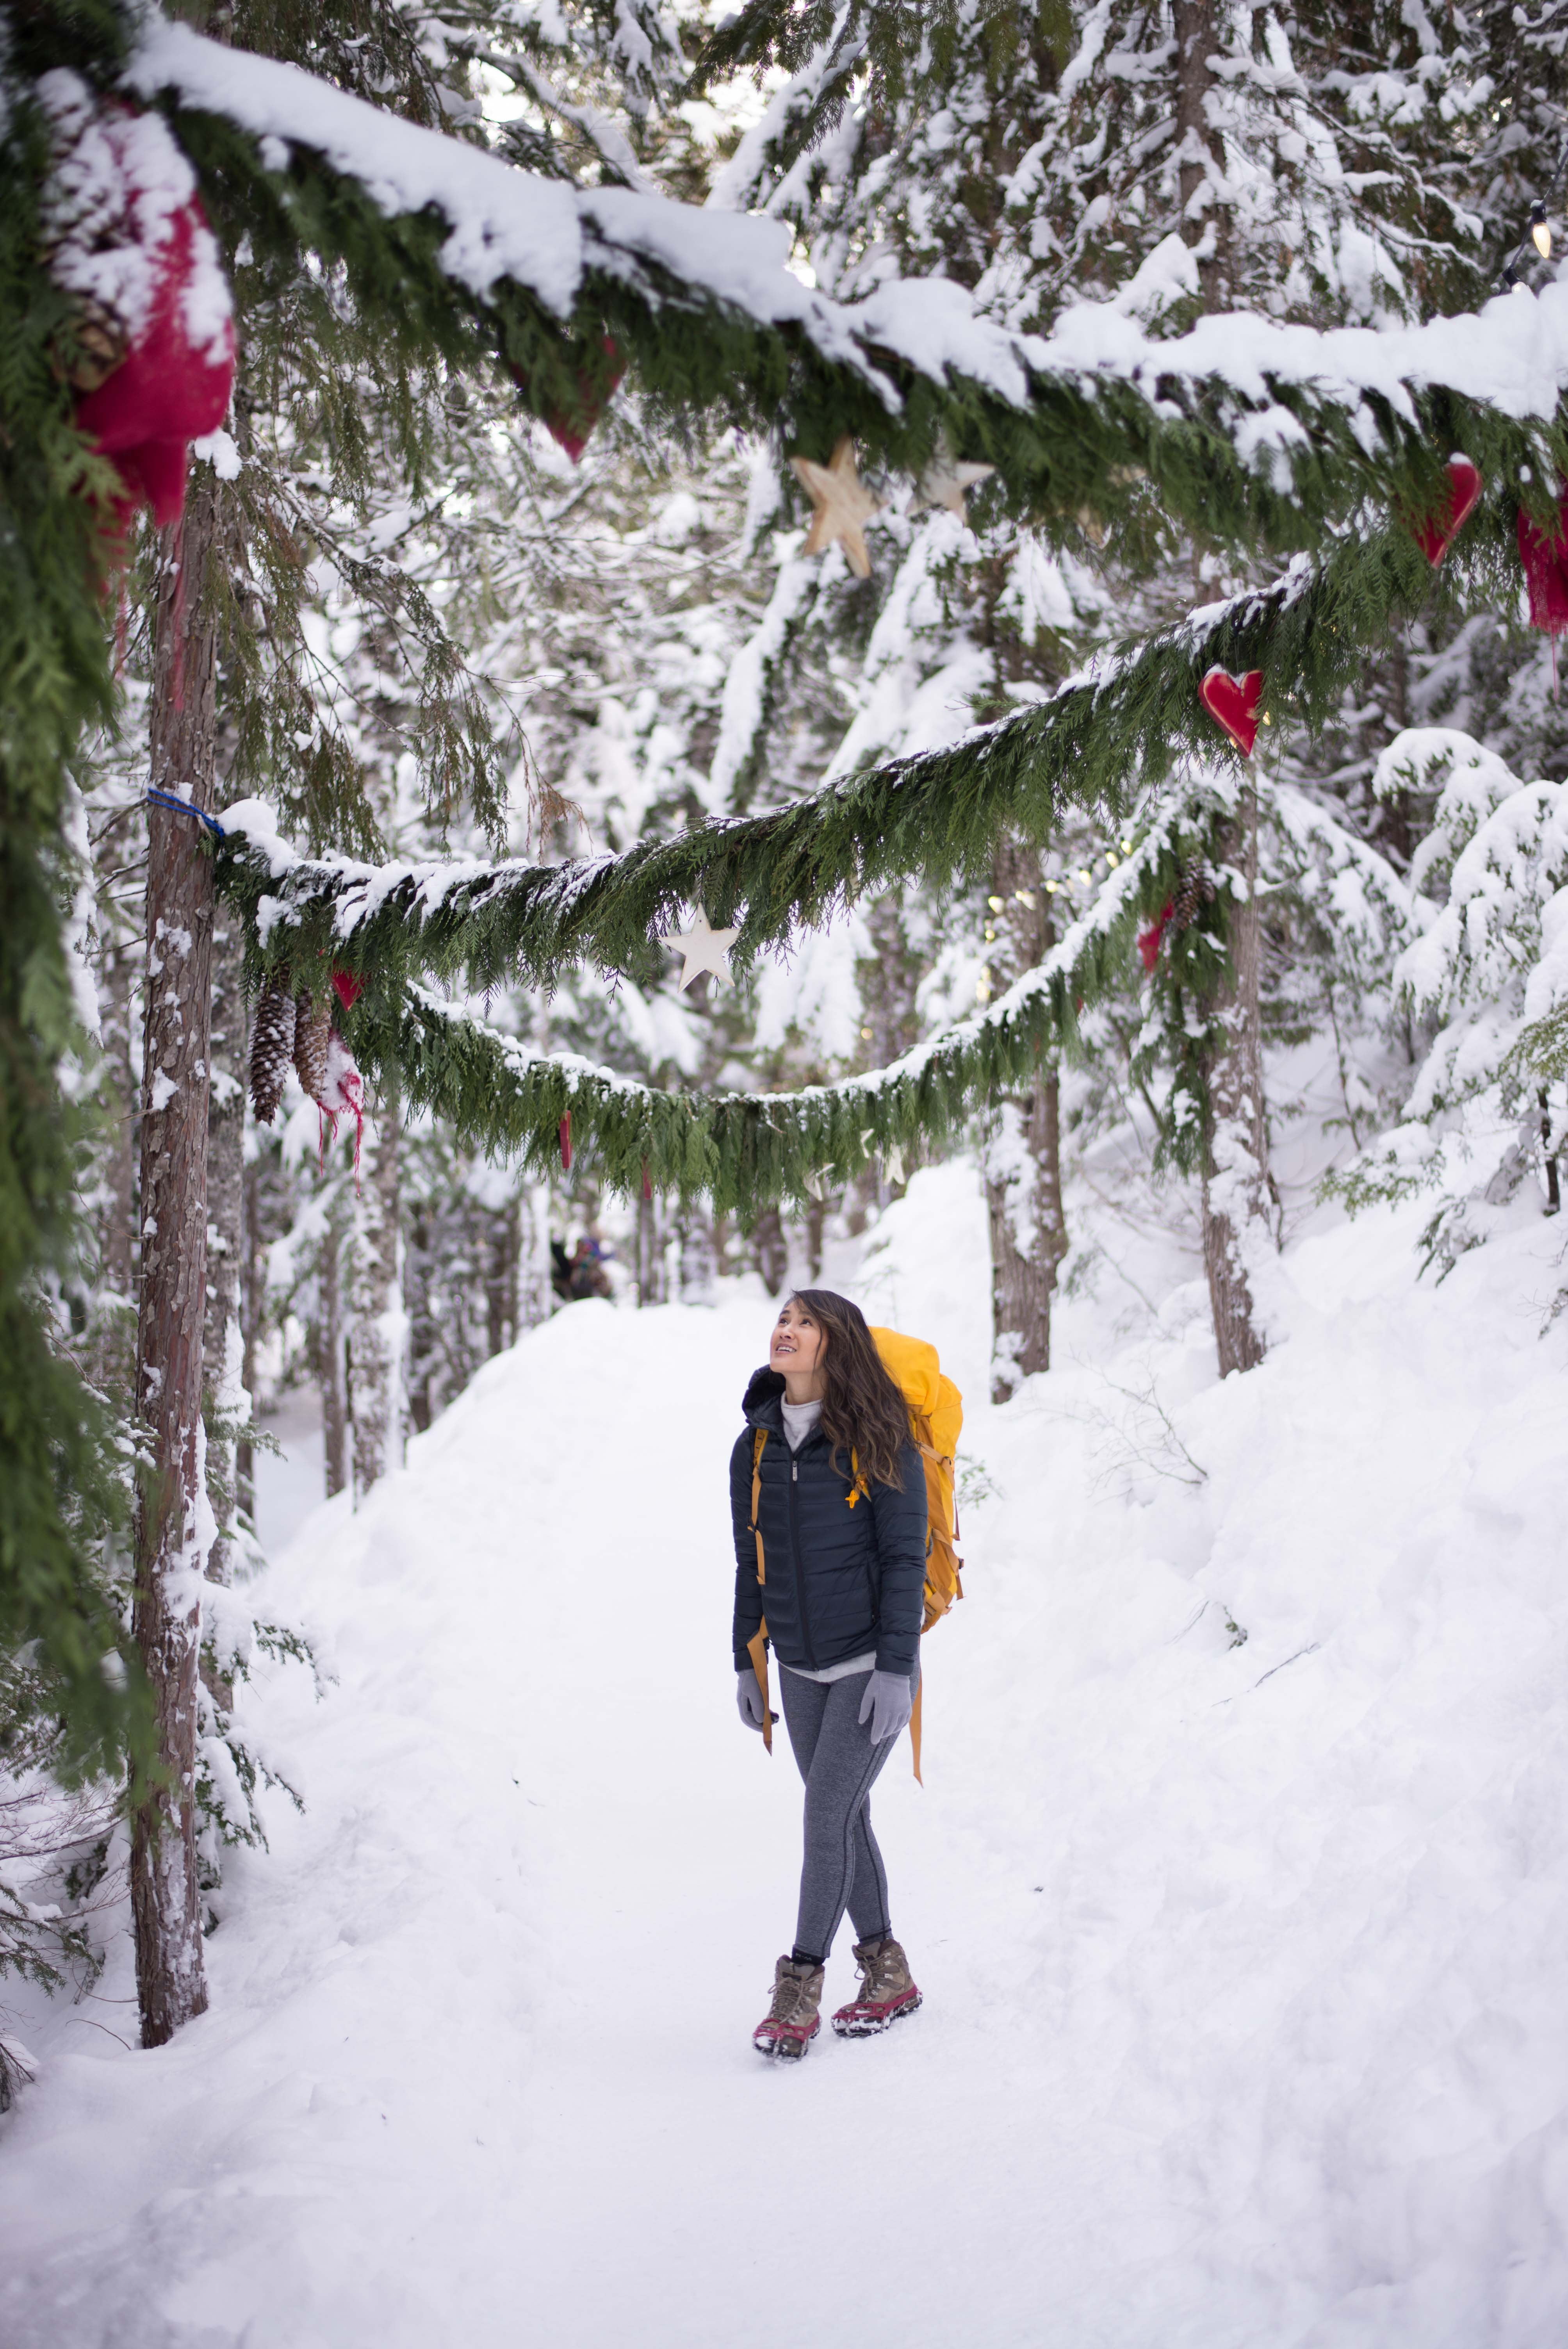 Hiking and snowshoeing at Sea to Sky Gondola in Squamish, British Columbia #explorecanada #camandtay